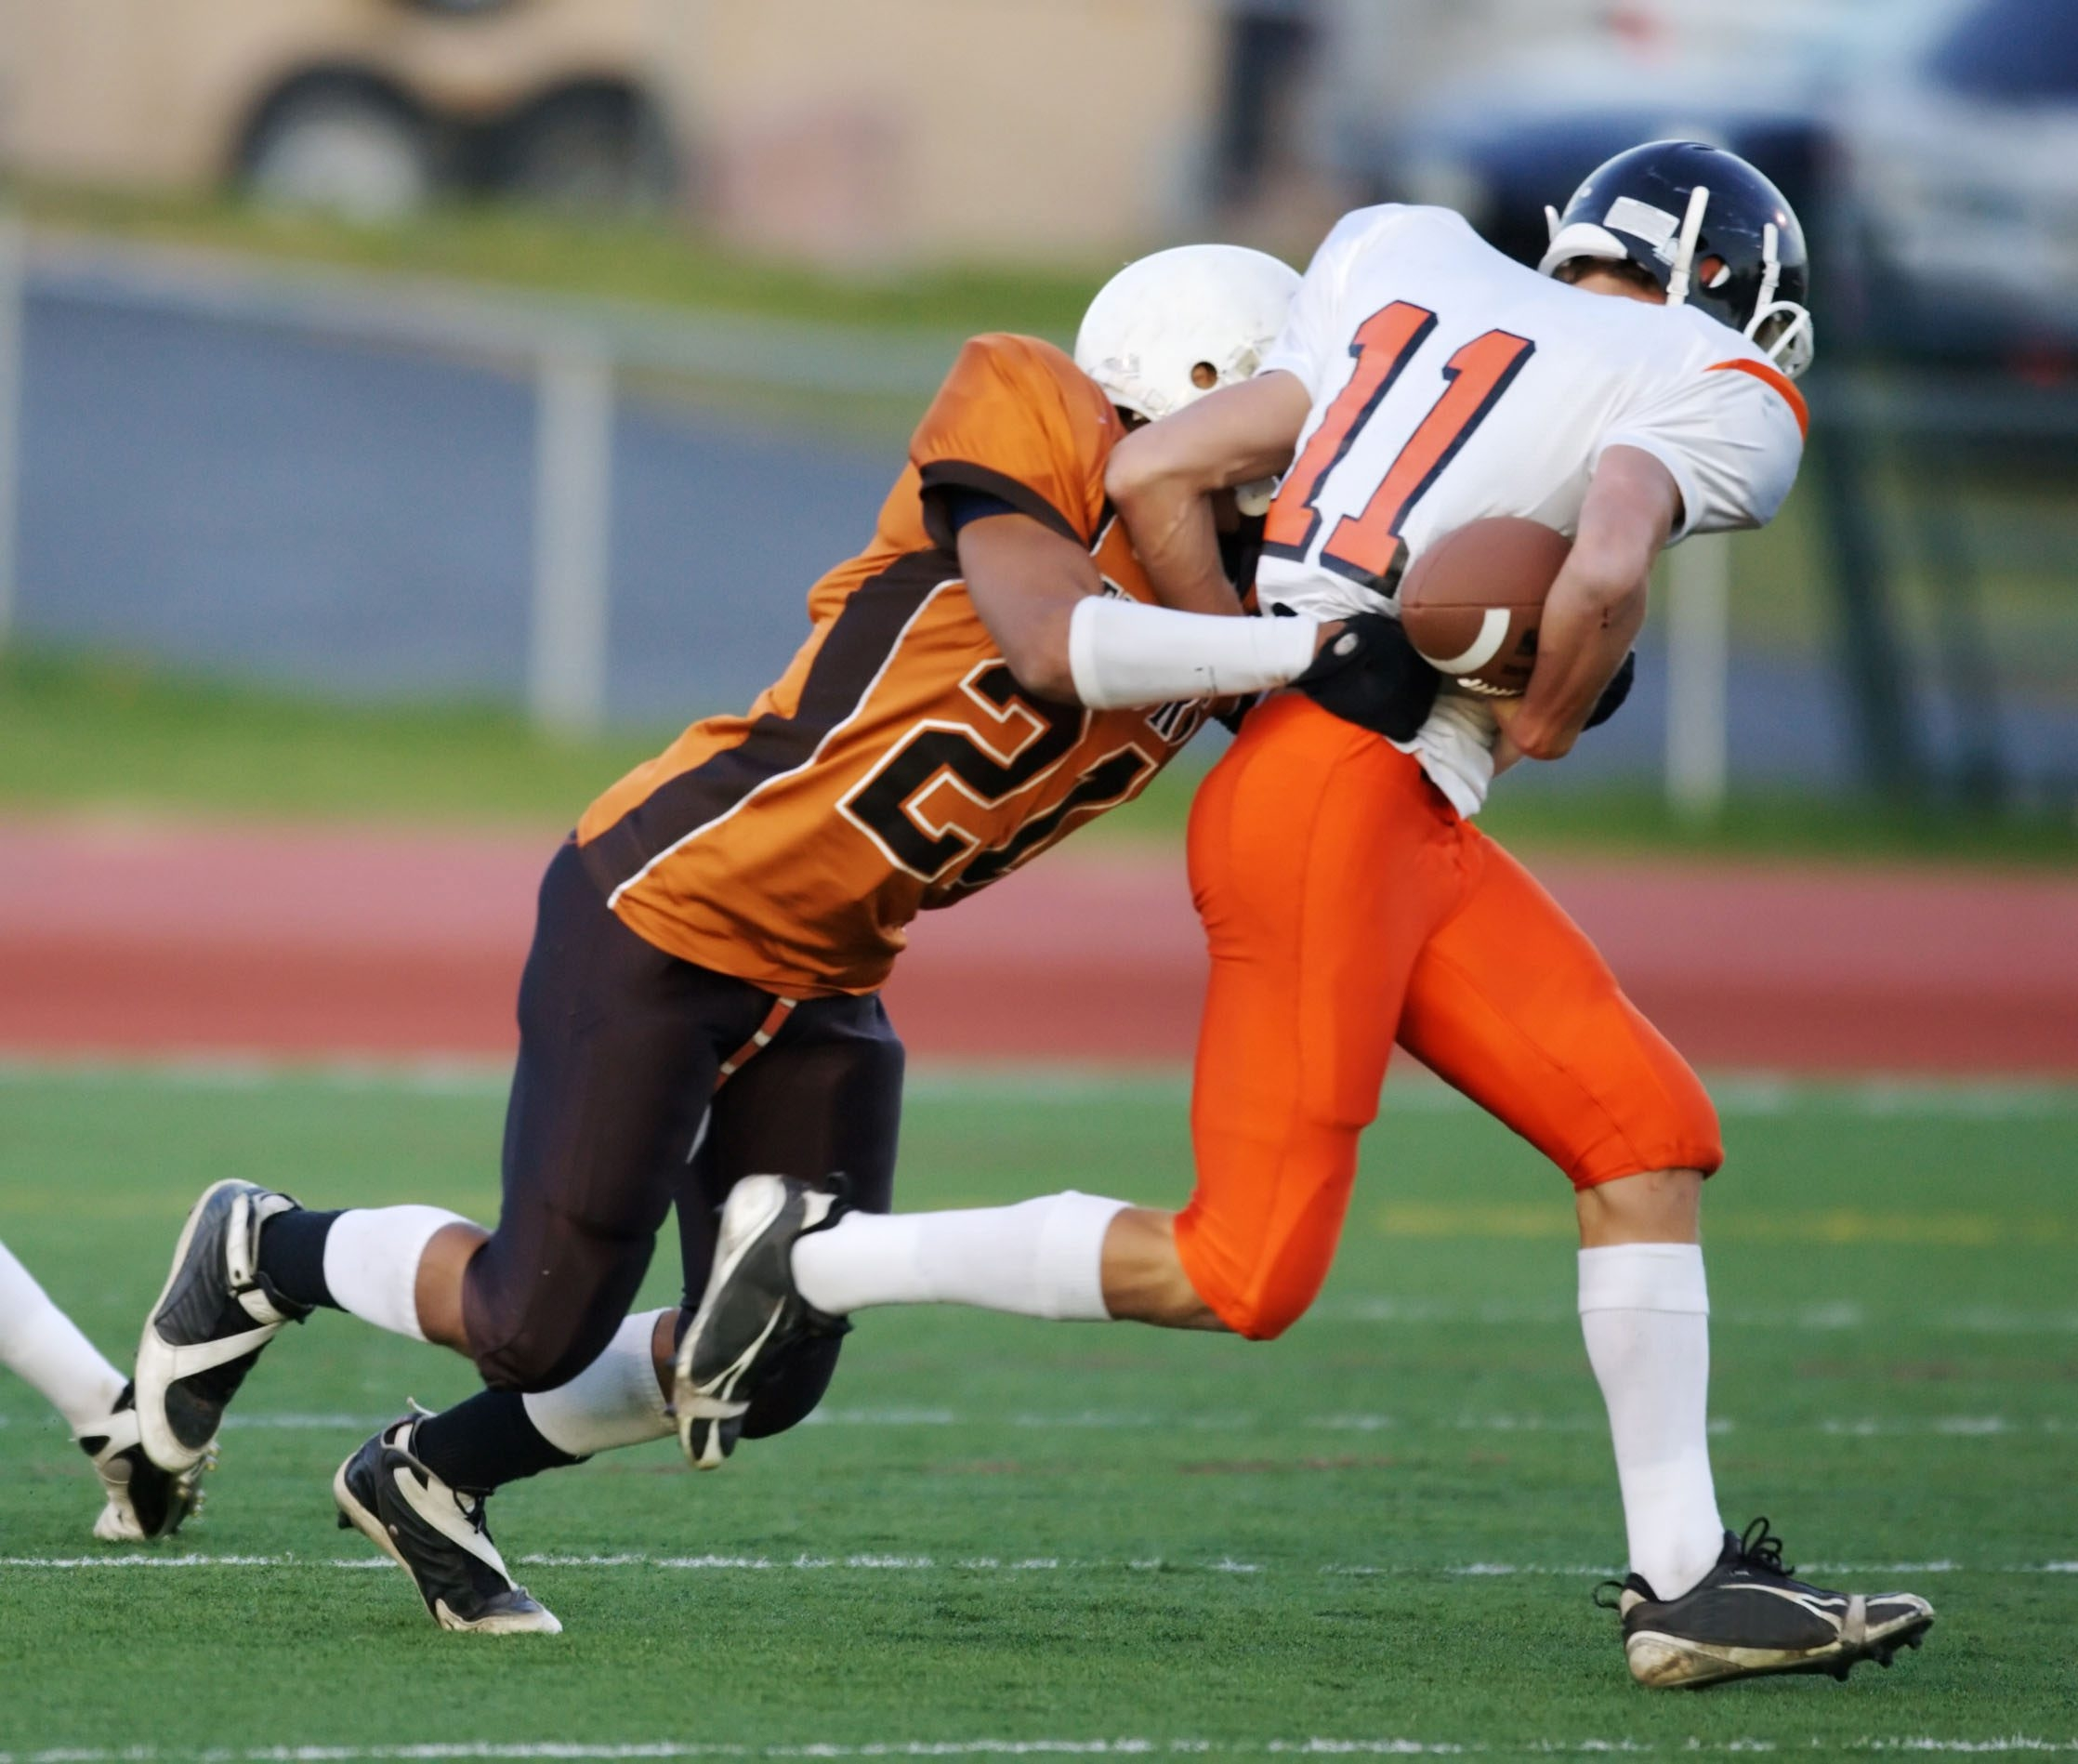 Concussions are most common in football, rugby, hockey, soccer and basketball.